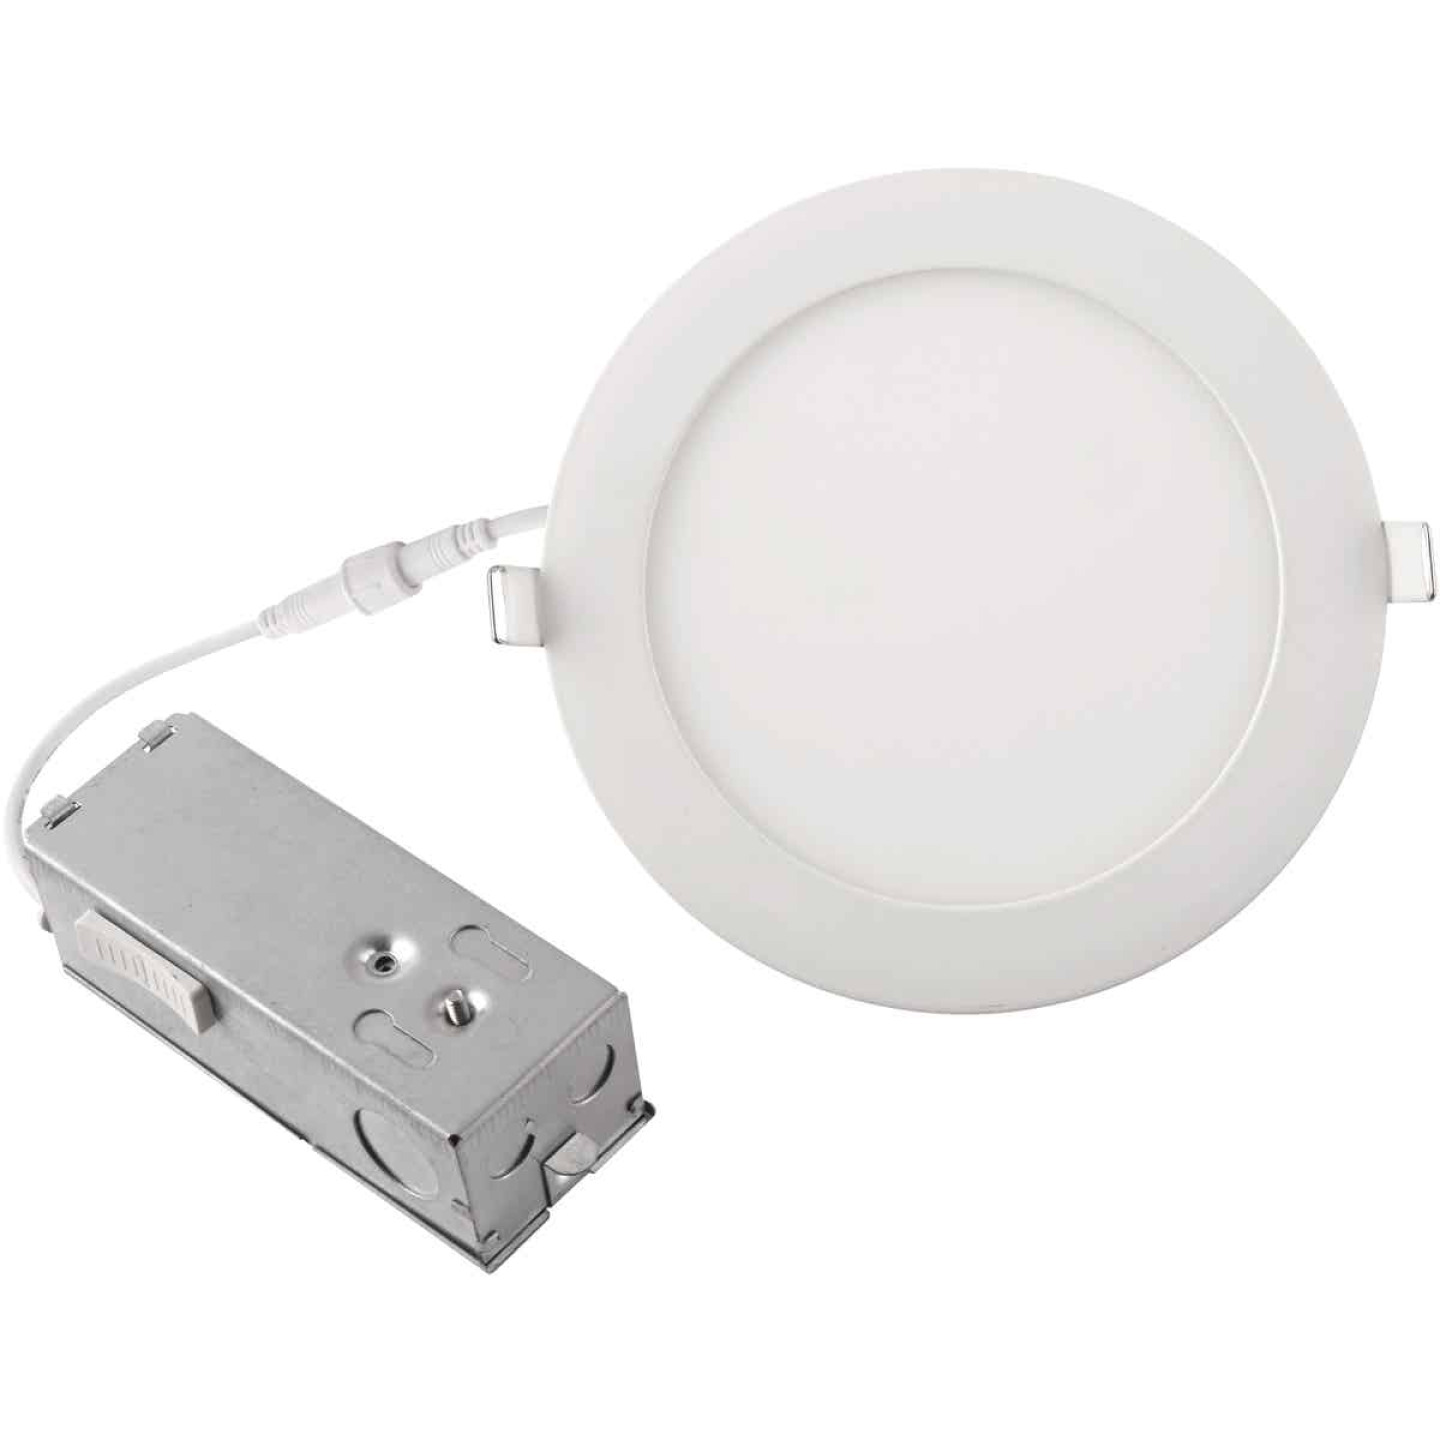 6 In. New Construction IC Rated White Tunable Slim LED CCT Downlight Image 3